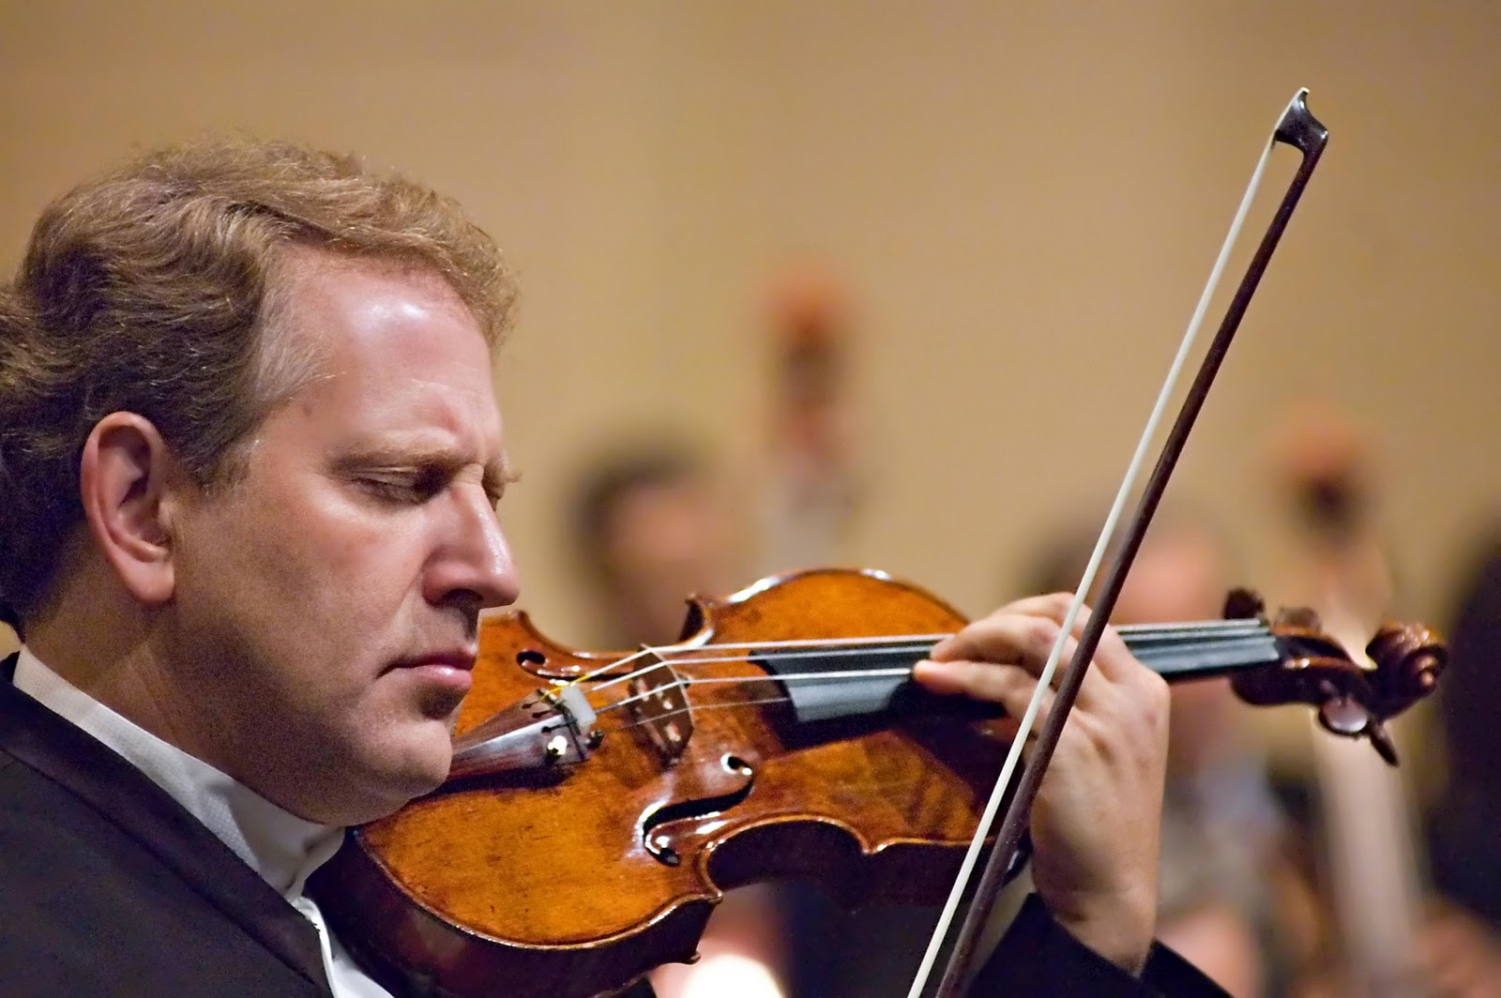 Israeli violinist Shlomo Mintz performed for Schreiber's music students alongside four other musicians. Mints also held a concert at the Sands Point Preserve the next day.